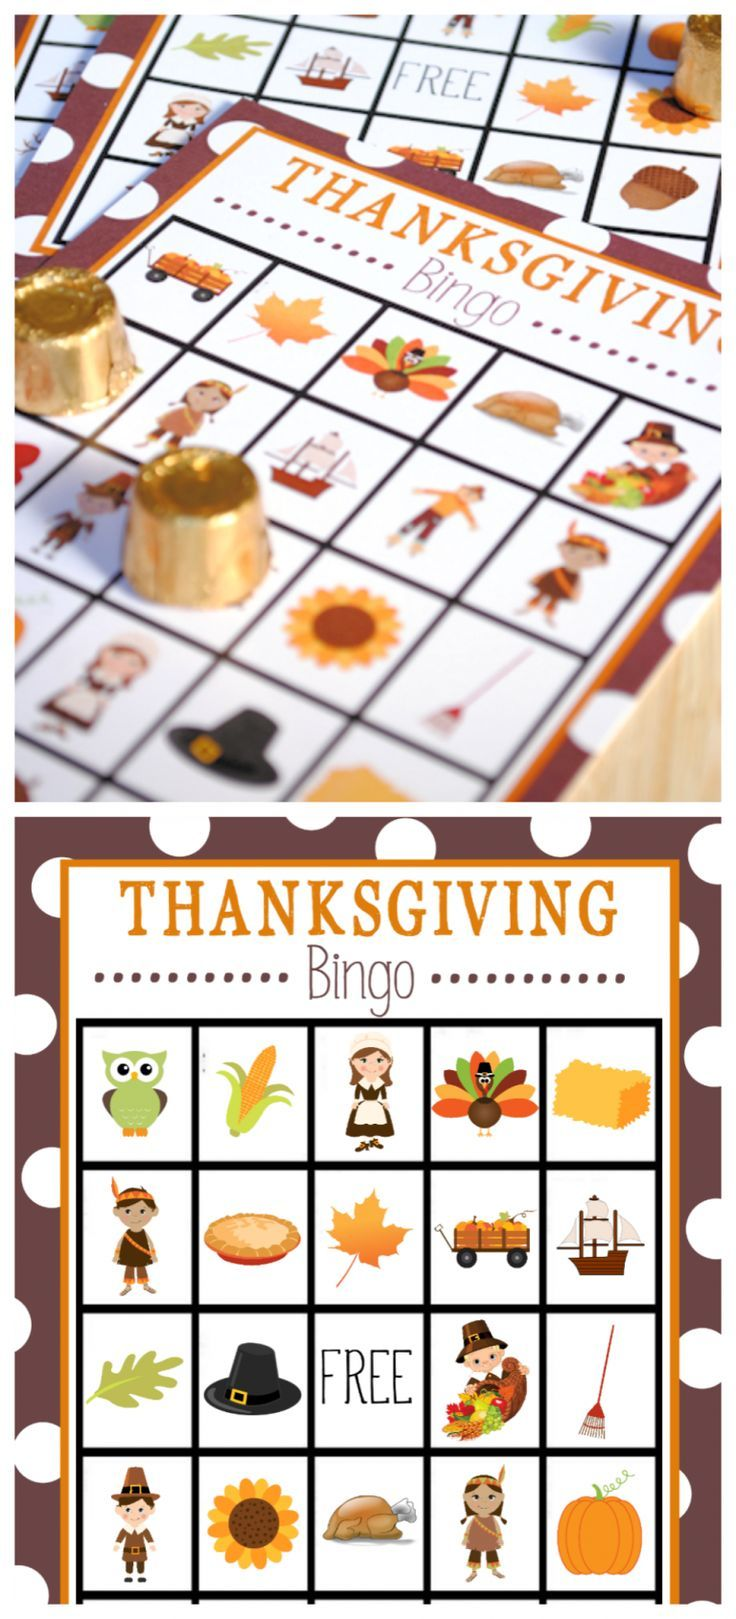 Free Printable Thanksgiving Bingo Game #thanksgivingdecorations